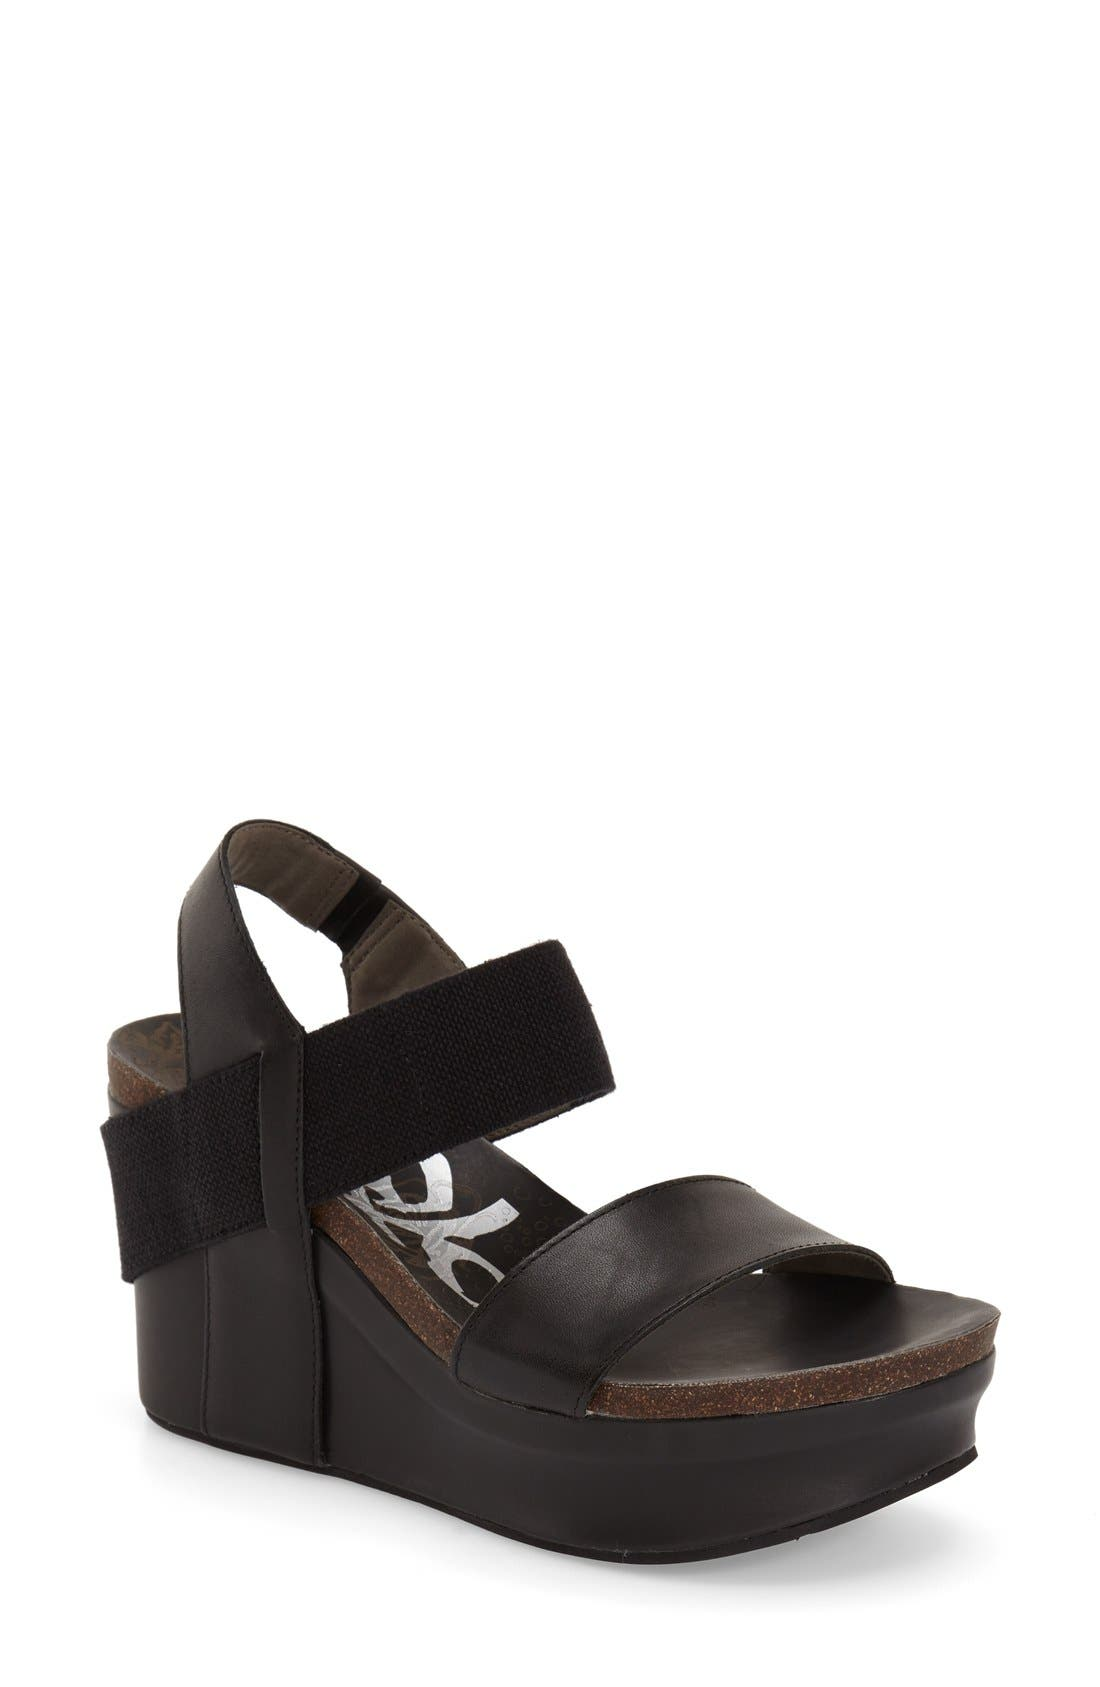 'Bushnell' Wedge Sandal,                             Main thumbnail 3, color,